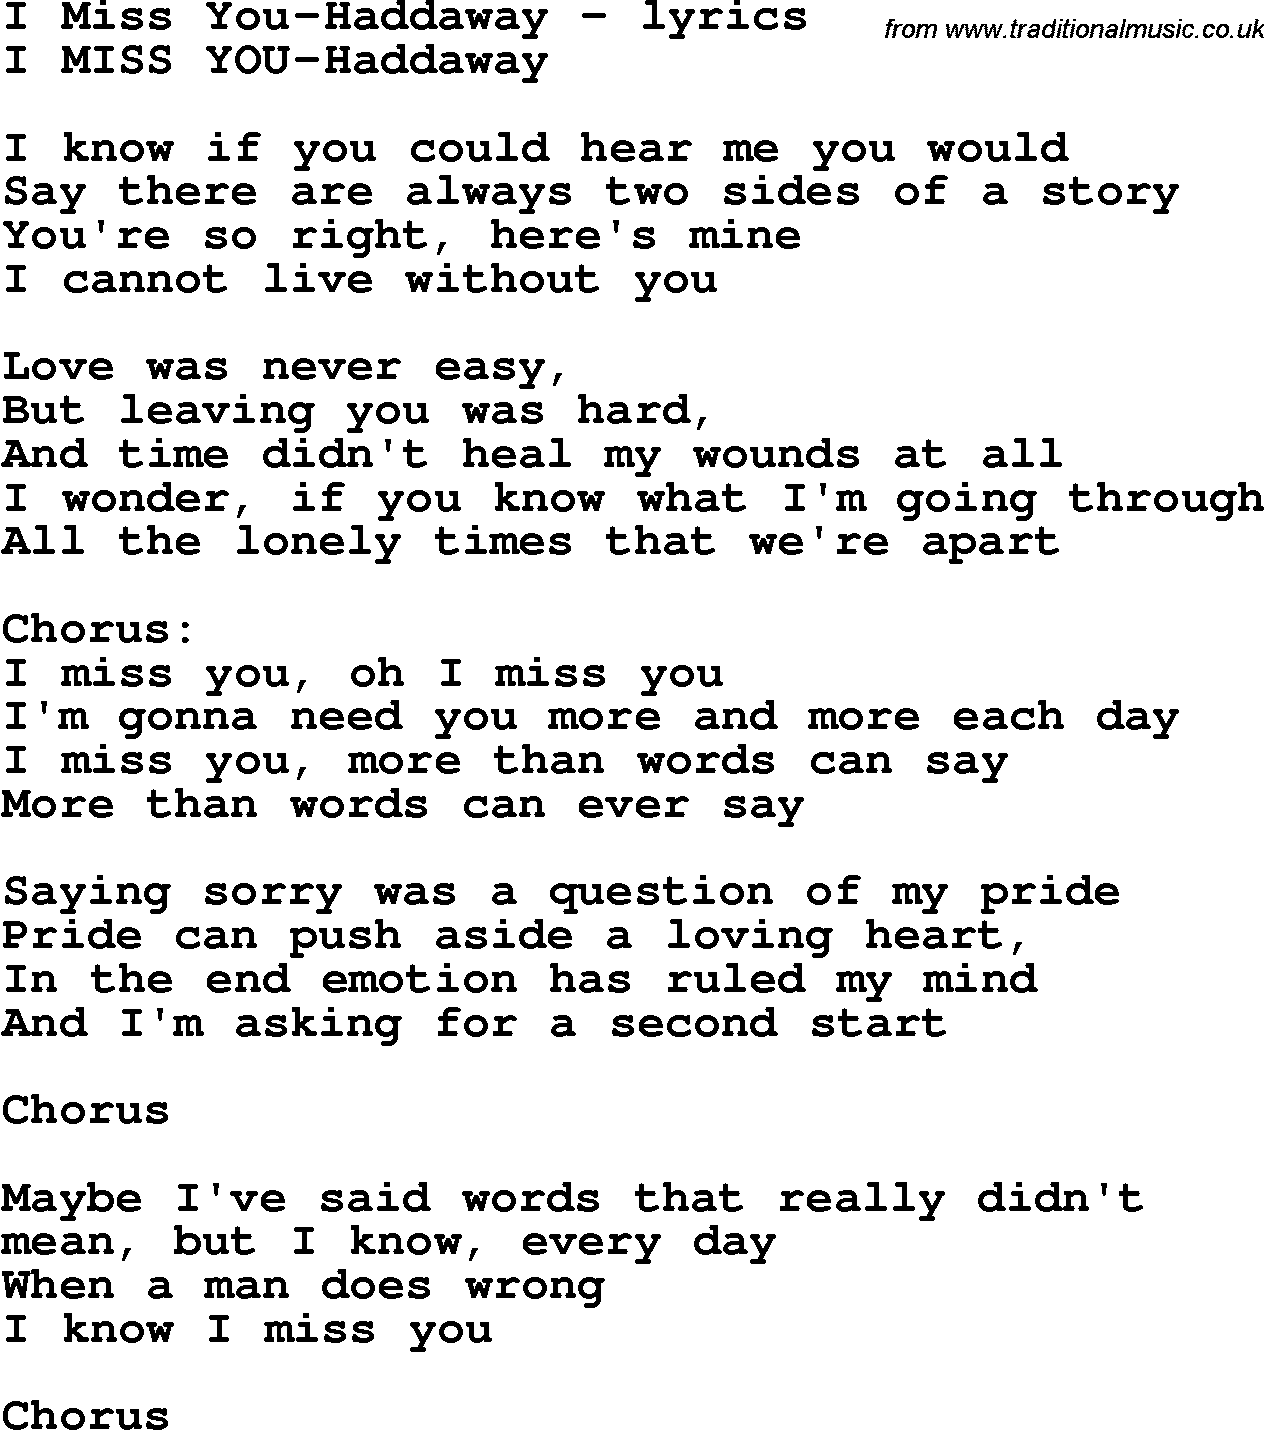 Love Song Lyrics For: I Miss You Haddaway